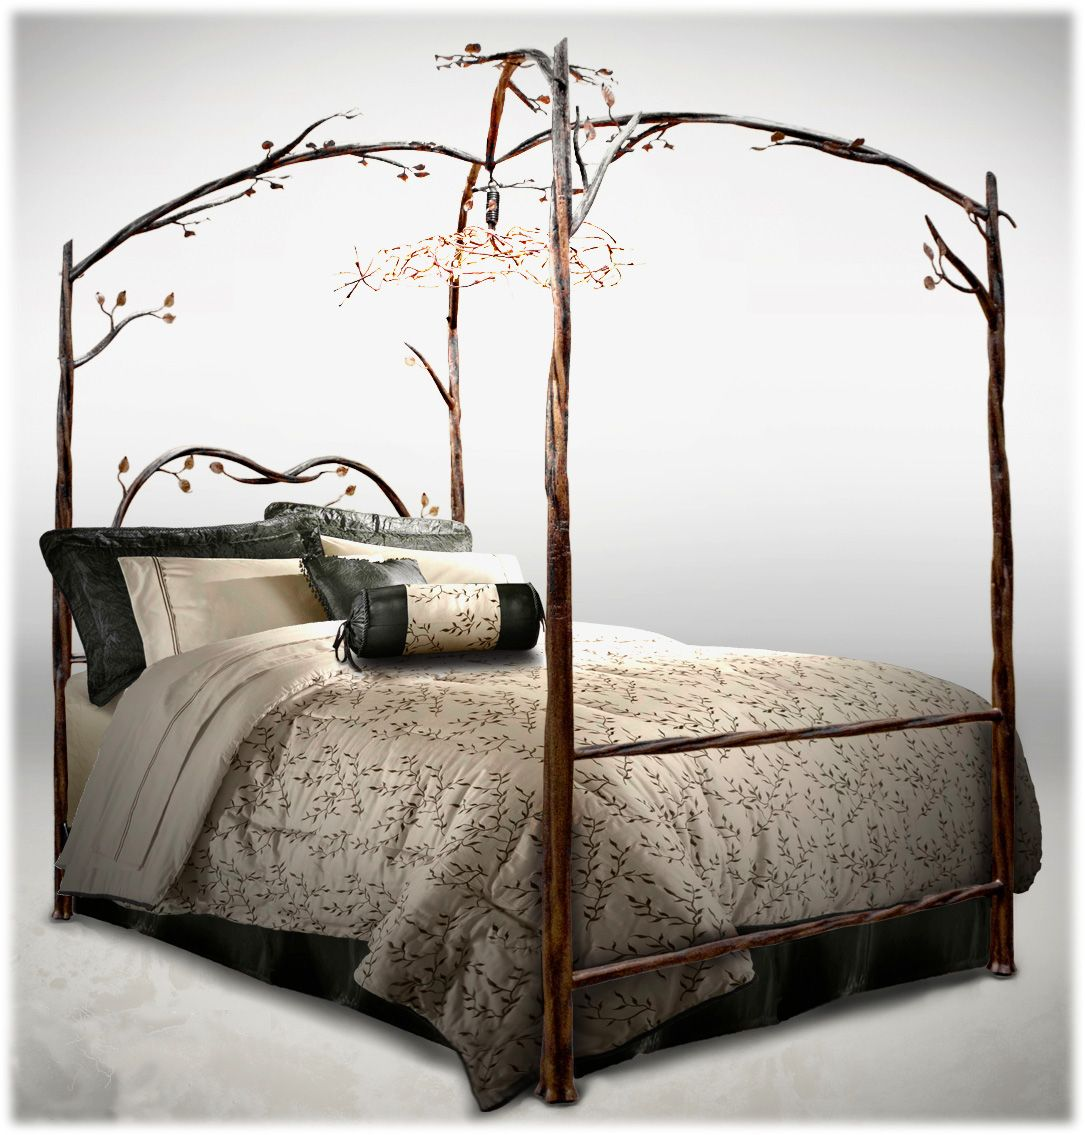 wrought iron bed frames - Iron Canopy Bed Frame